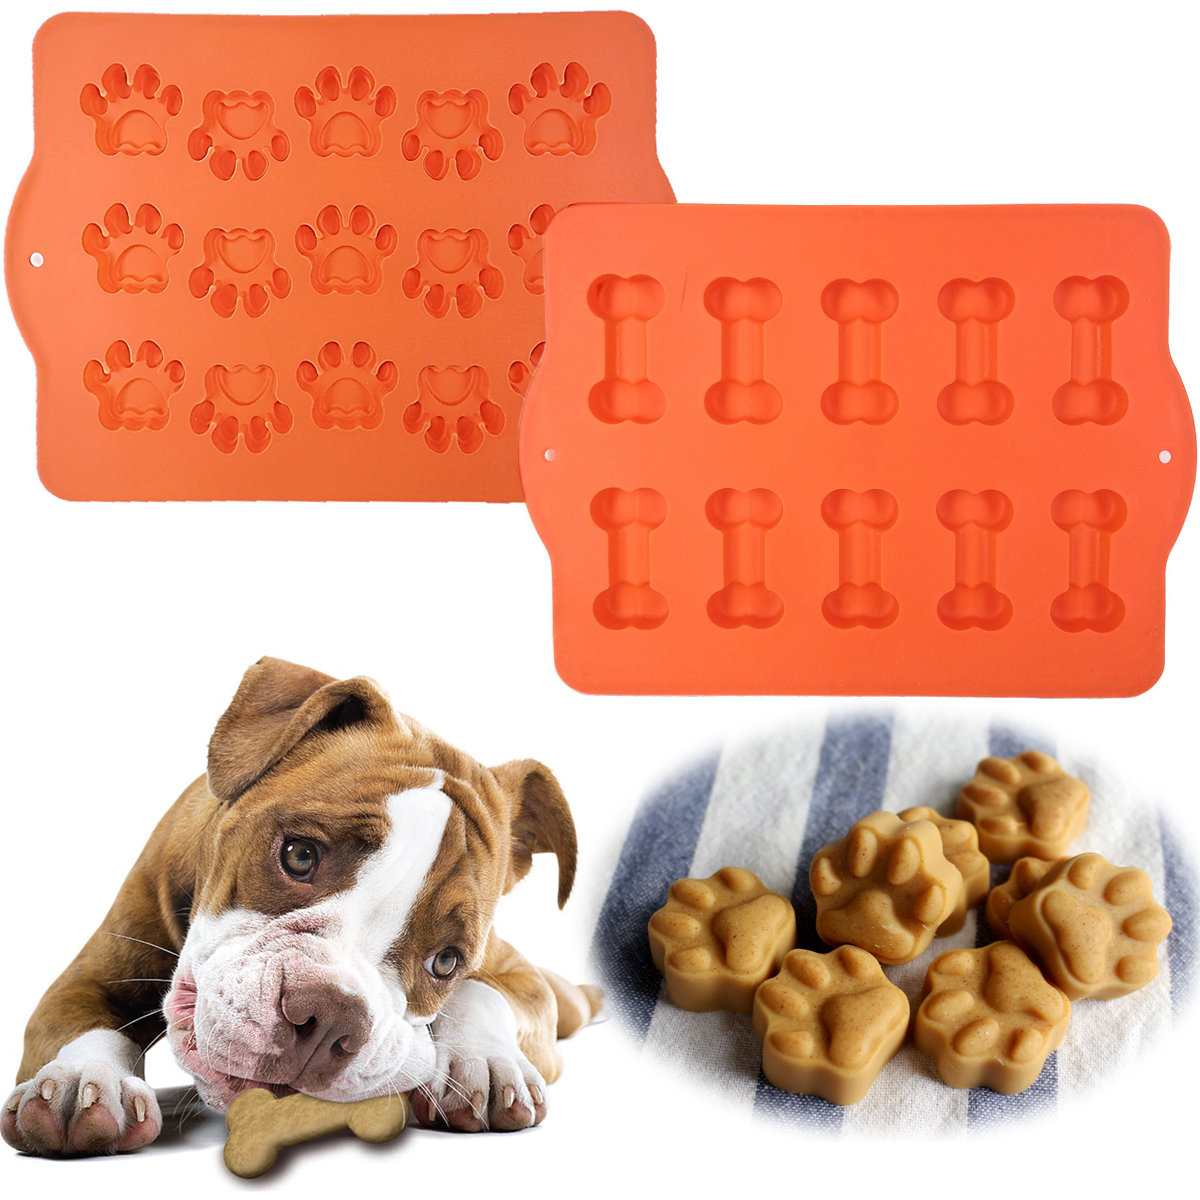 Hugs (2 Pack) Silicone Baking Molds For Pets (1 Bone Tray & 1 Paw Print Tray), Ice Cube Trays, Freezer Tray Or Oven SHeet, Silicone Dog... by Hugs